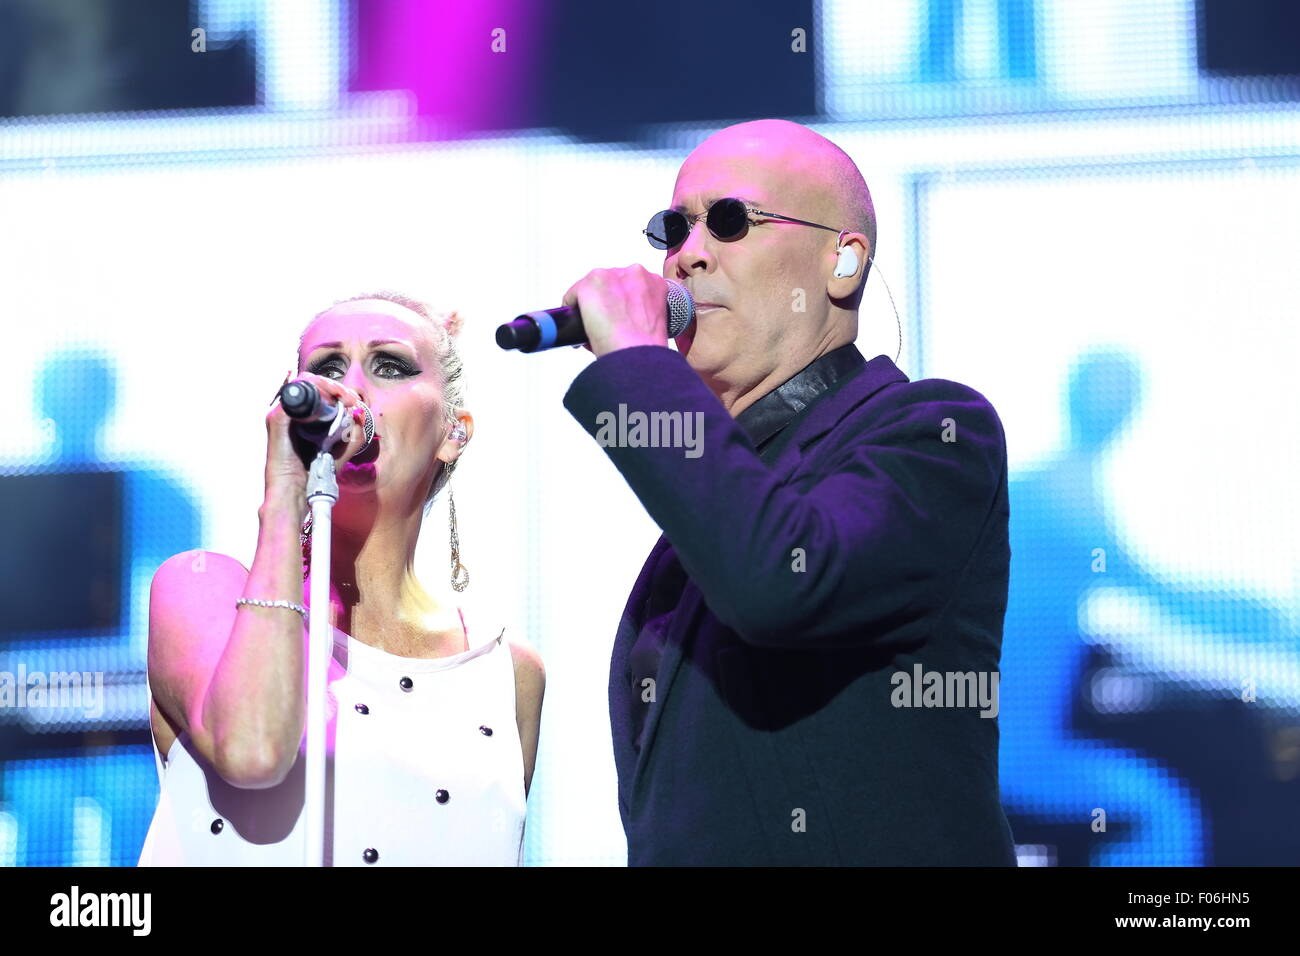 Macclesfield, Cheshire, UK. 8th August, 2015. Human League perform live at Rewind Festival North at Capesthorne Stock Photo